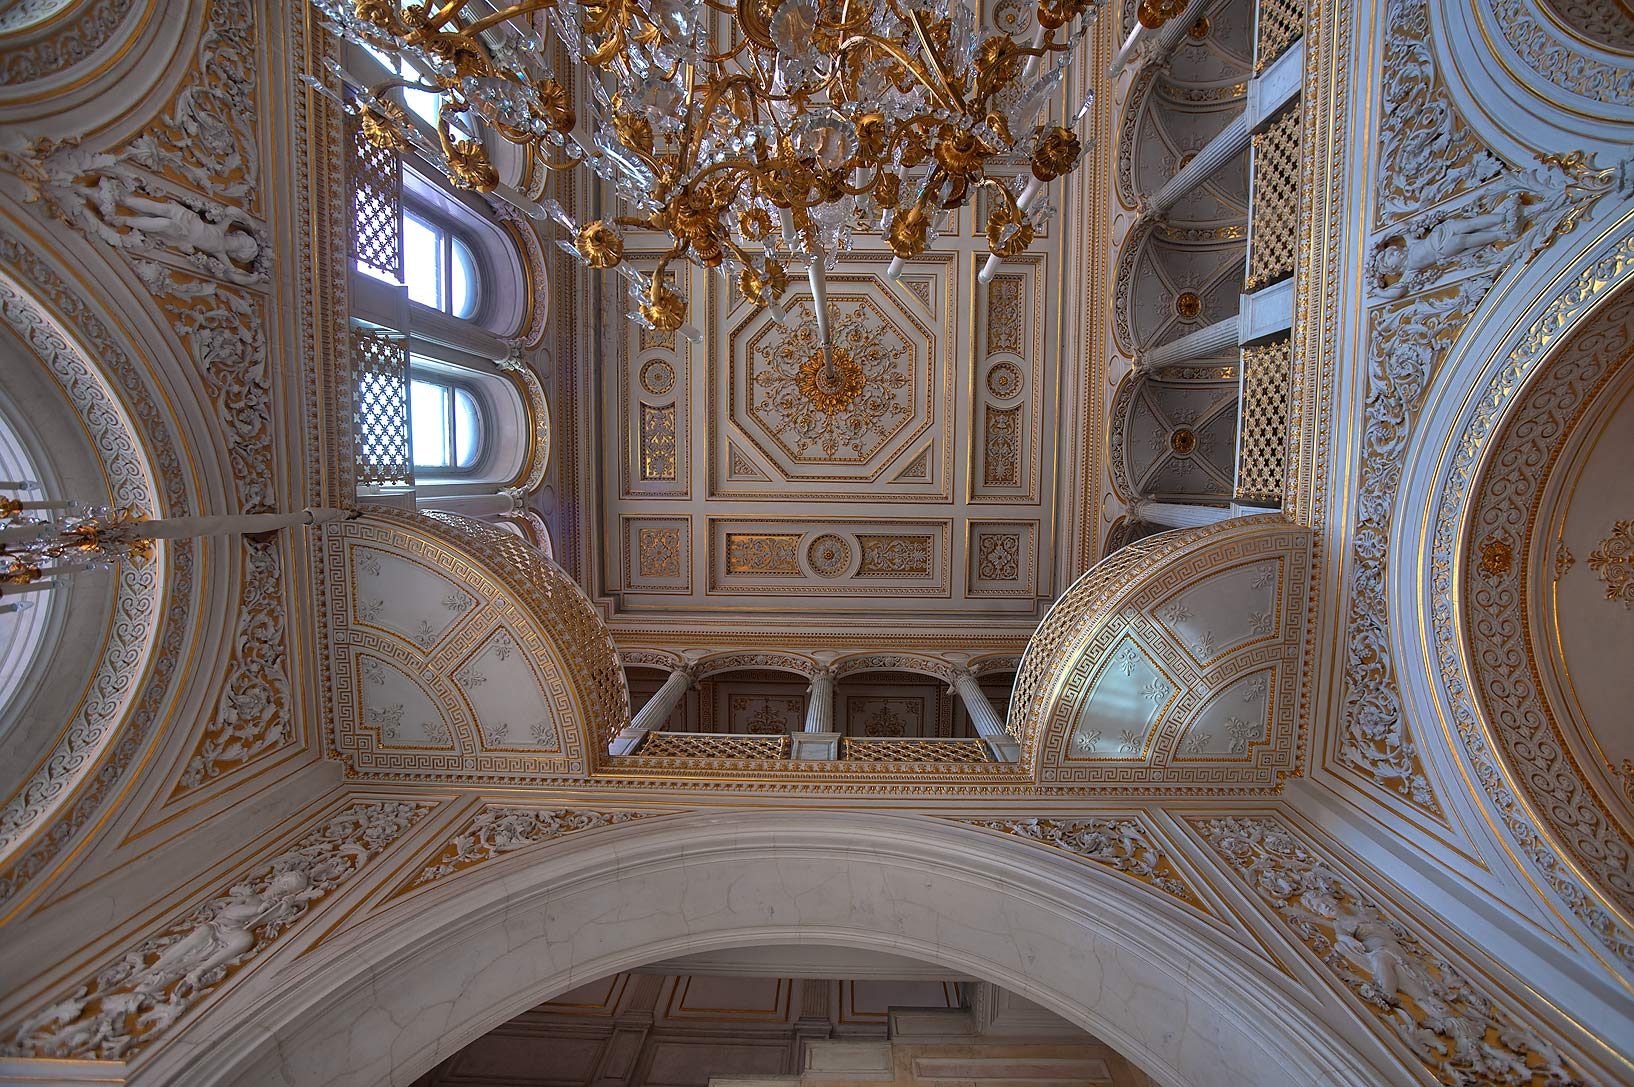 Ceiling of Pavilion Hall in Hermitage Museum. St.Petersburg, Russia